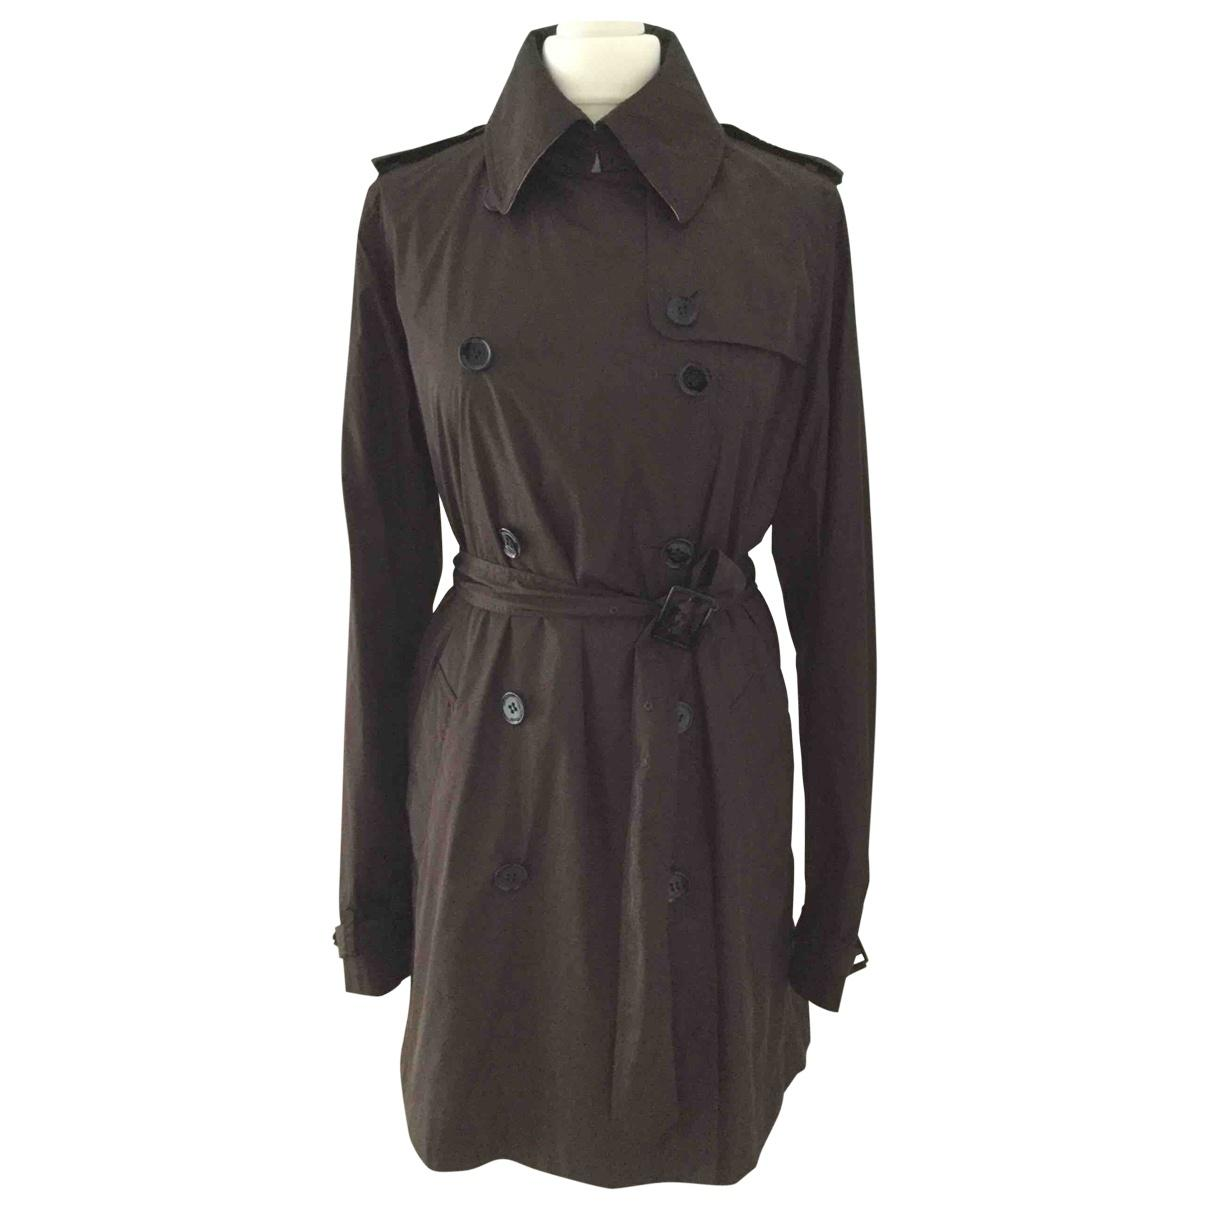 68cf547984ce Burberry. Women s Brown Pre-owned Trench Coat. £264 From Vestiaire  Collective ...